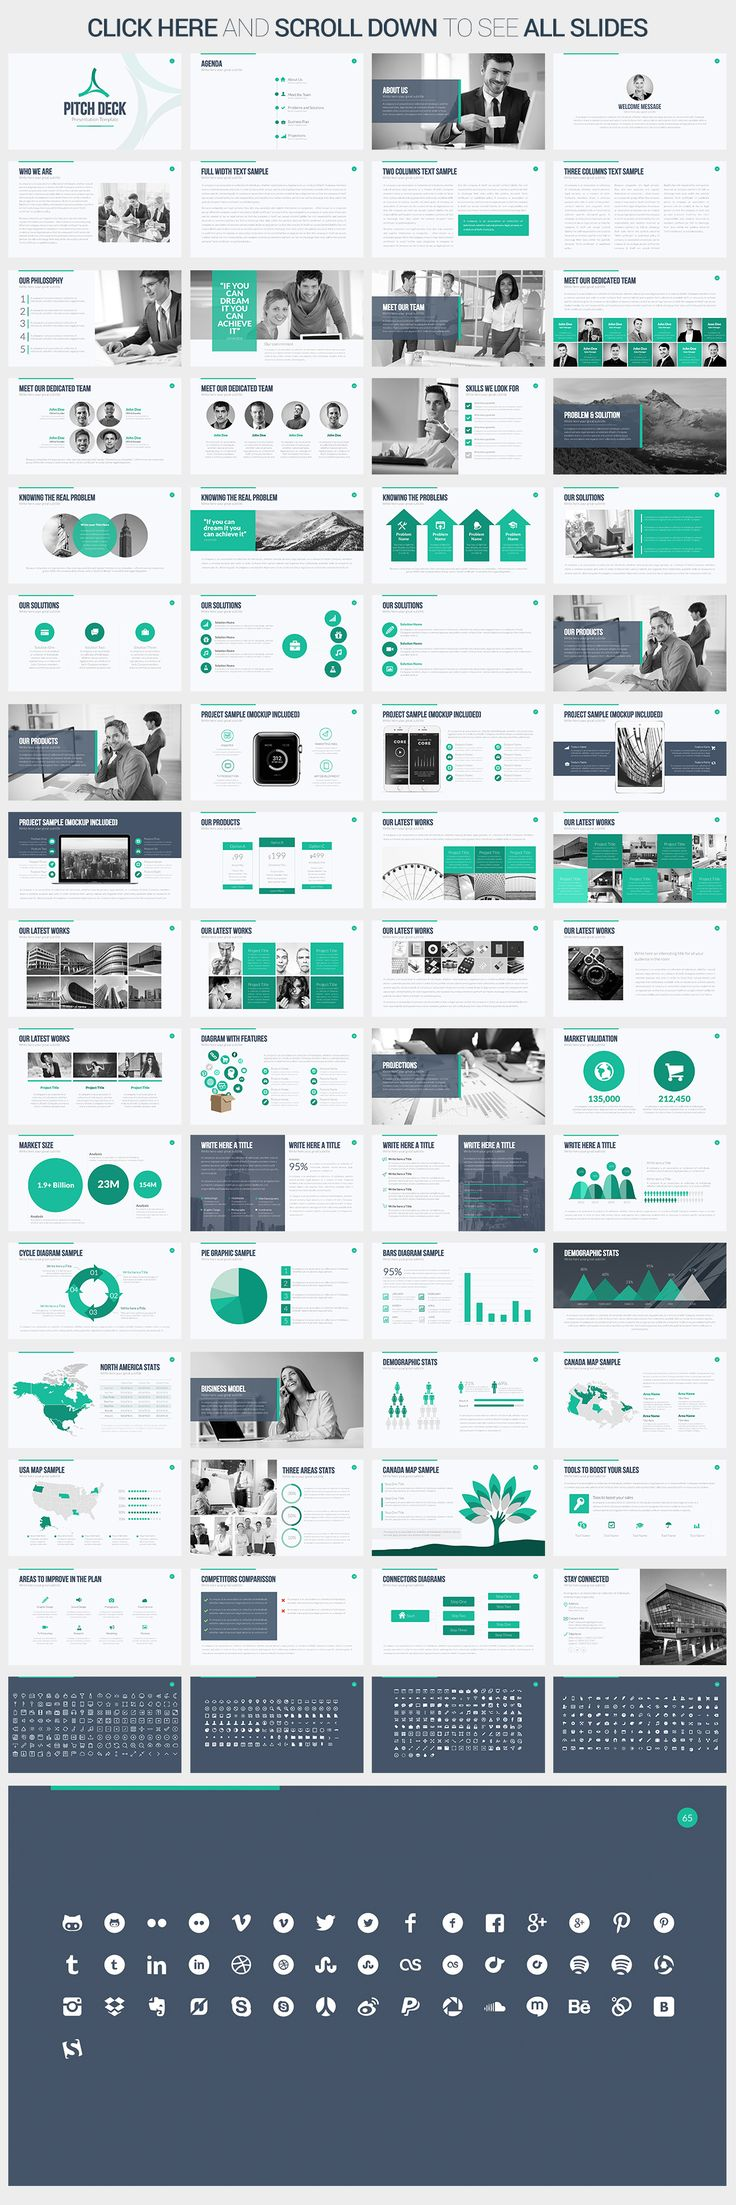 Pitch Deck PowerPoint Template by SlidePro on Creative Market